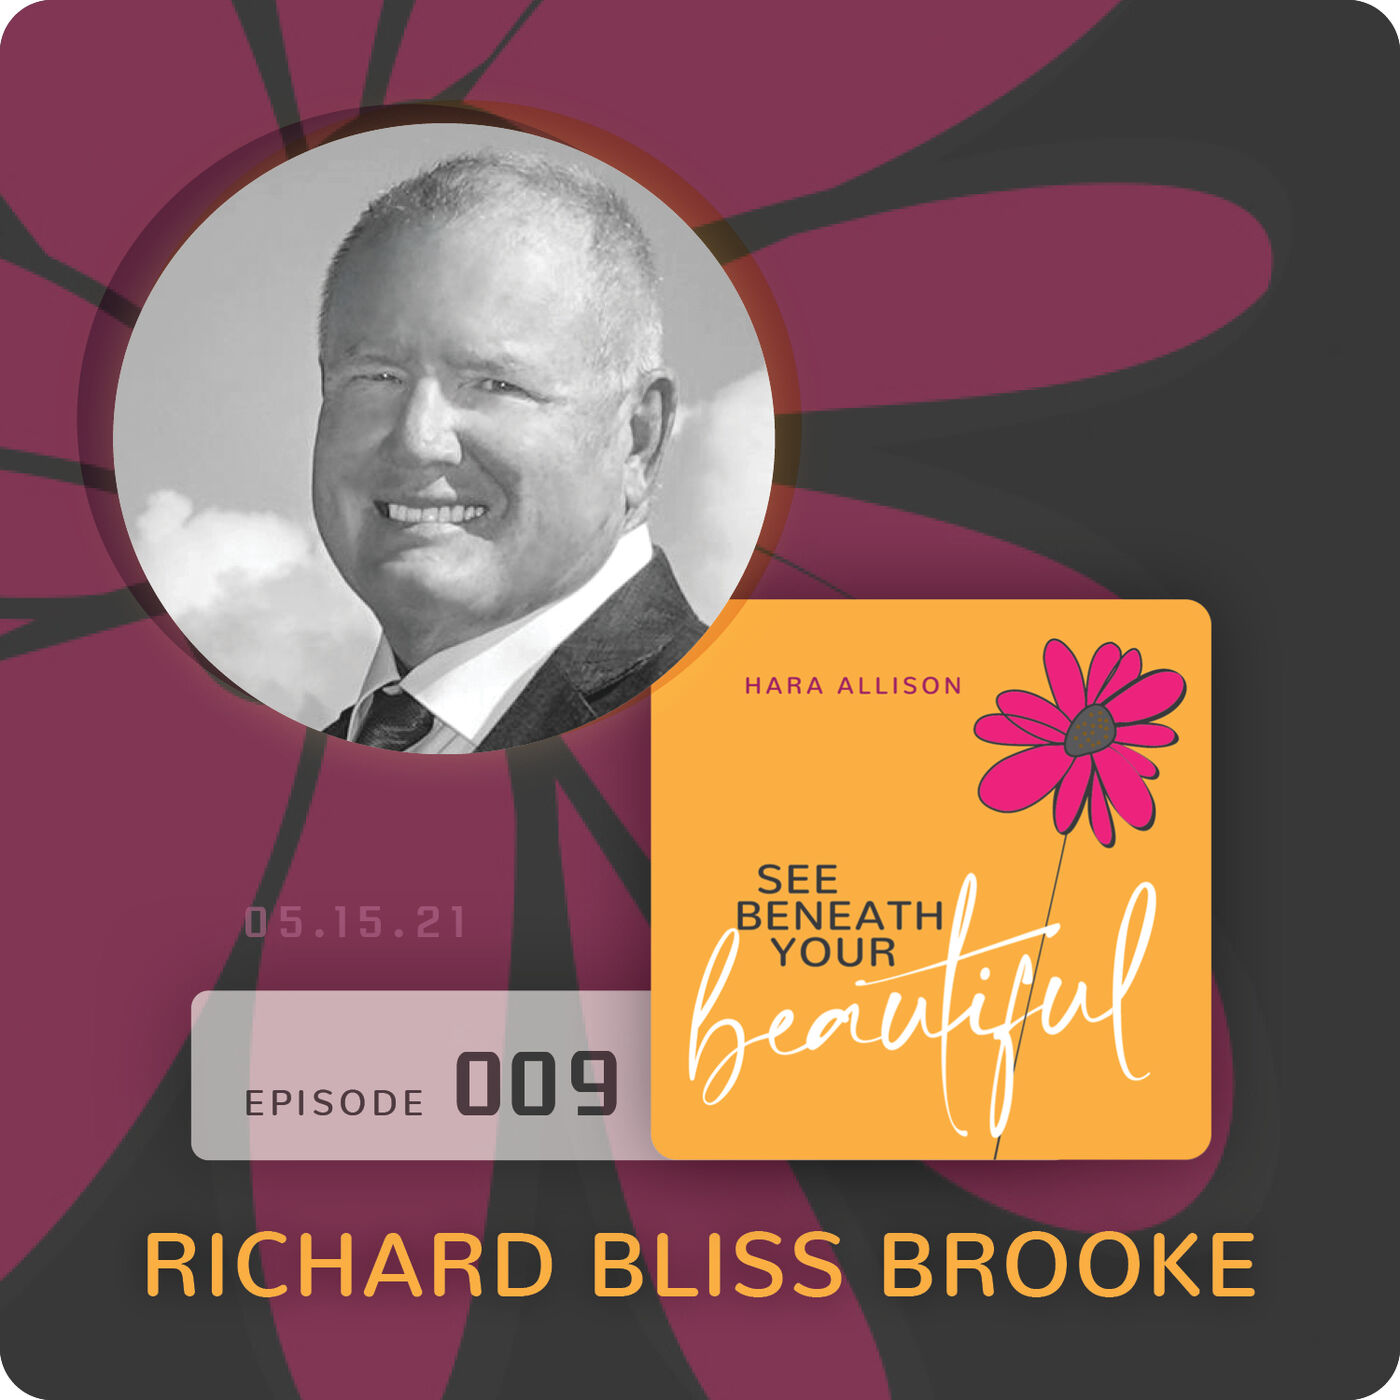 009. Richard Bliss Brooke discusses feeling socially inept, barely graduating high school, and working at a chicken plant: and also shares his wisdom about the years of personal development that helped him become extremely successful